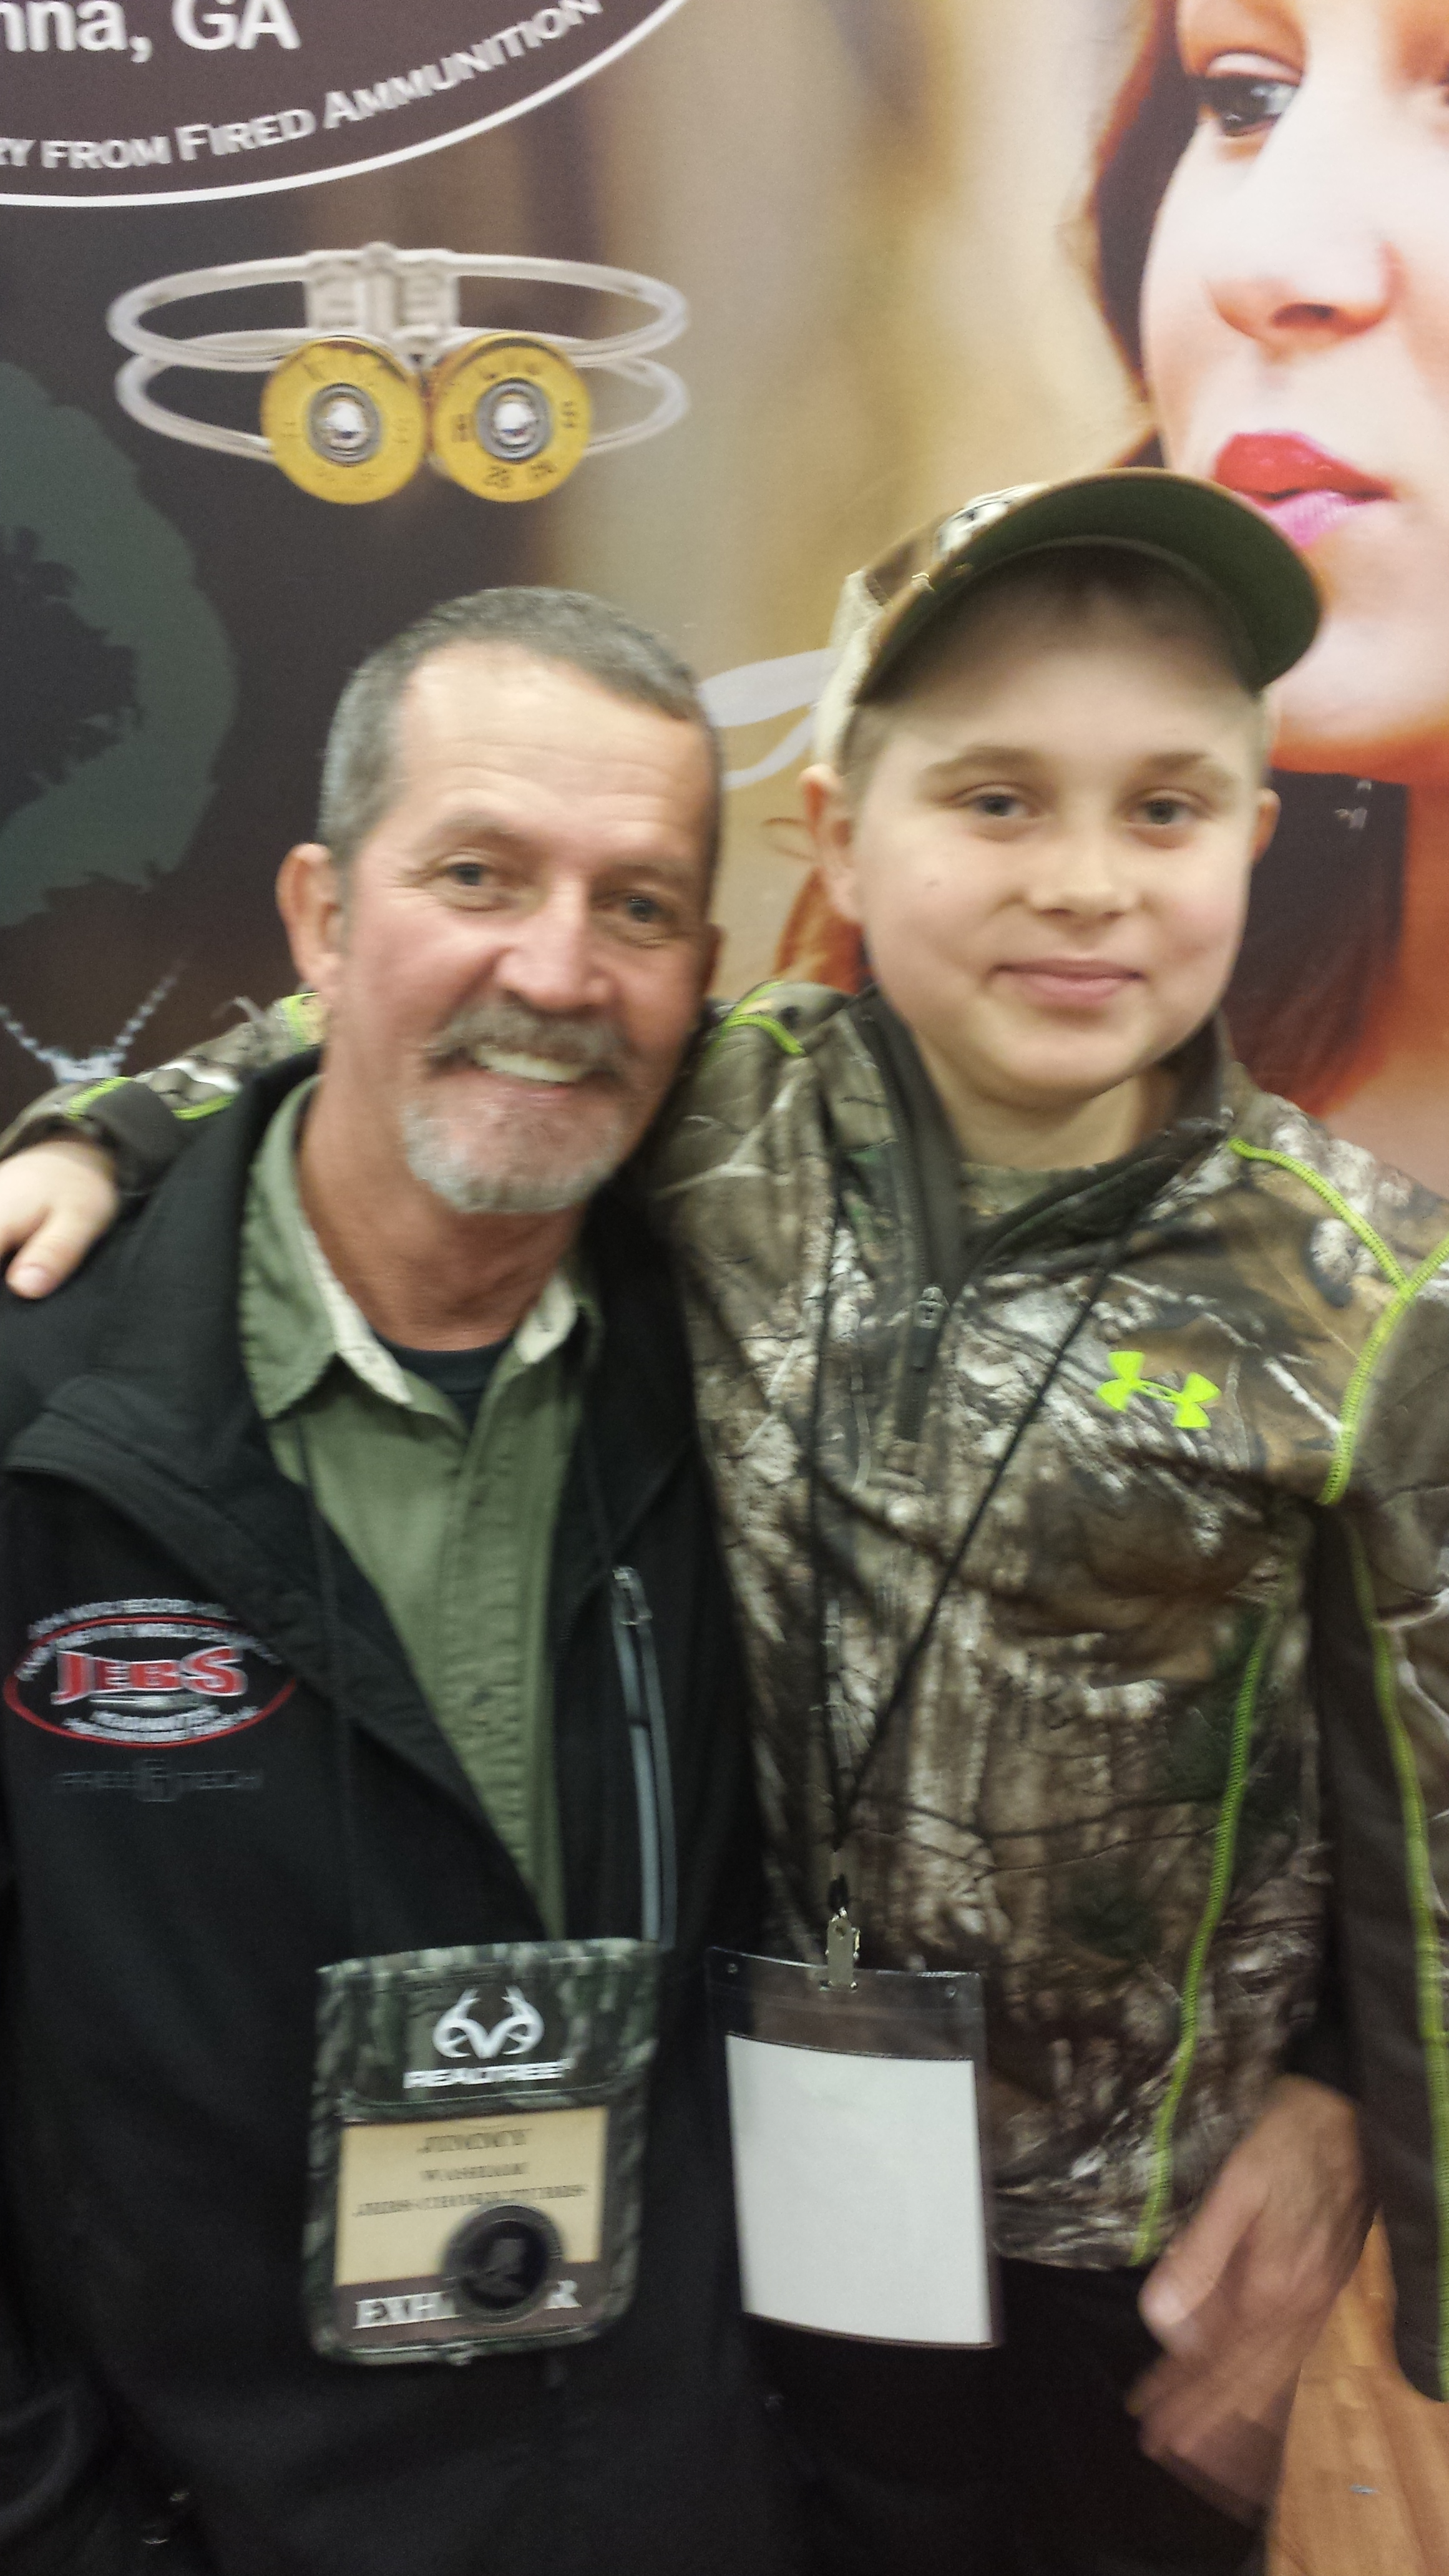 Braedan and Jimmy Washam, CEO of Jebbs Choke Tube. Jimmy has acknowledged and assigned Braedan as an Official Pro Staff Member.